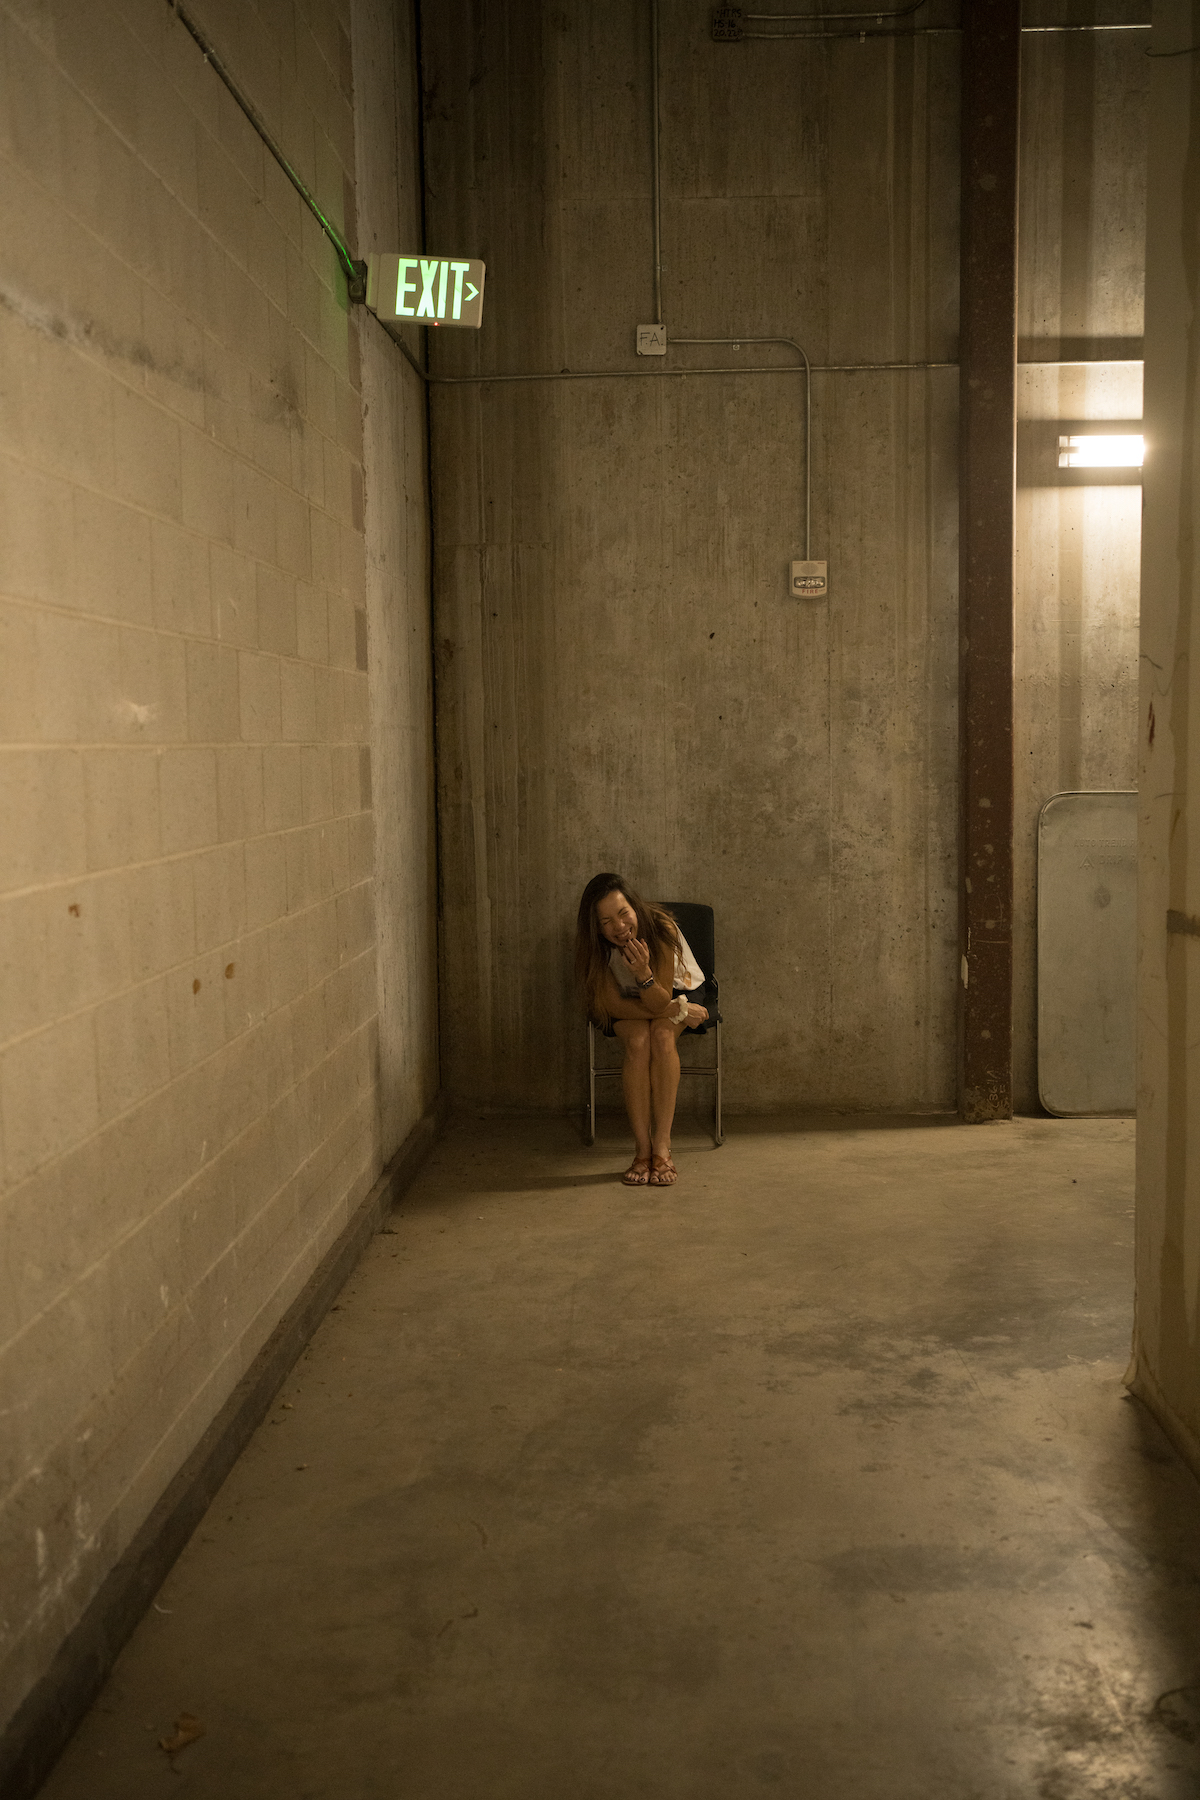 picture of Chris' wife laughing under a green 'EXIT' sign in a concrete-walled mall hallway